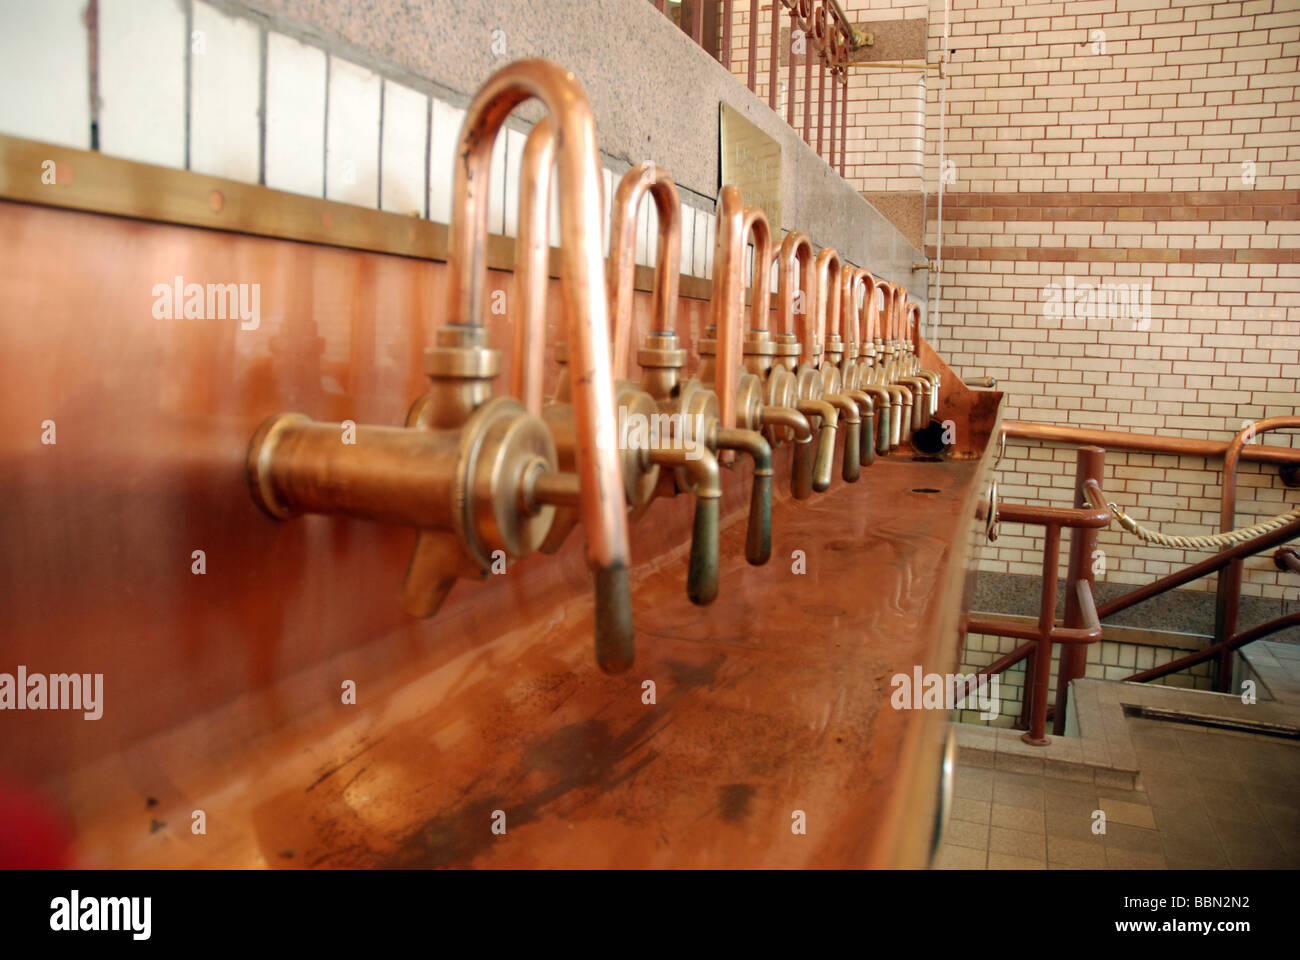 brewery amsterdam experience copper tasting taps - Stock Image